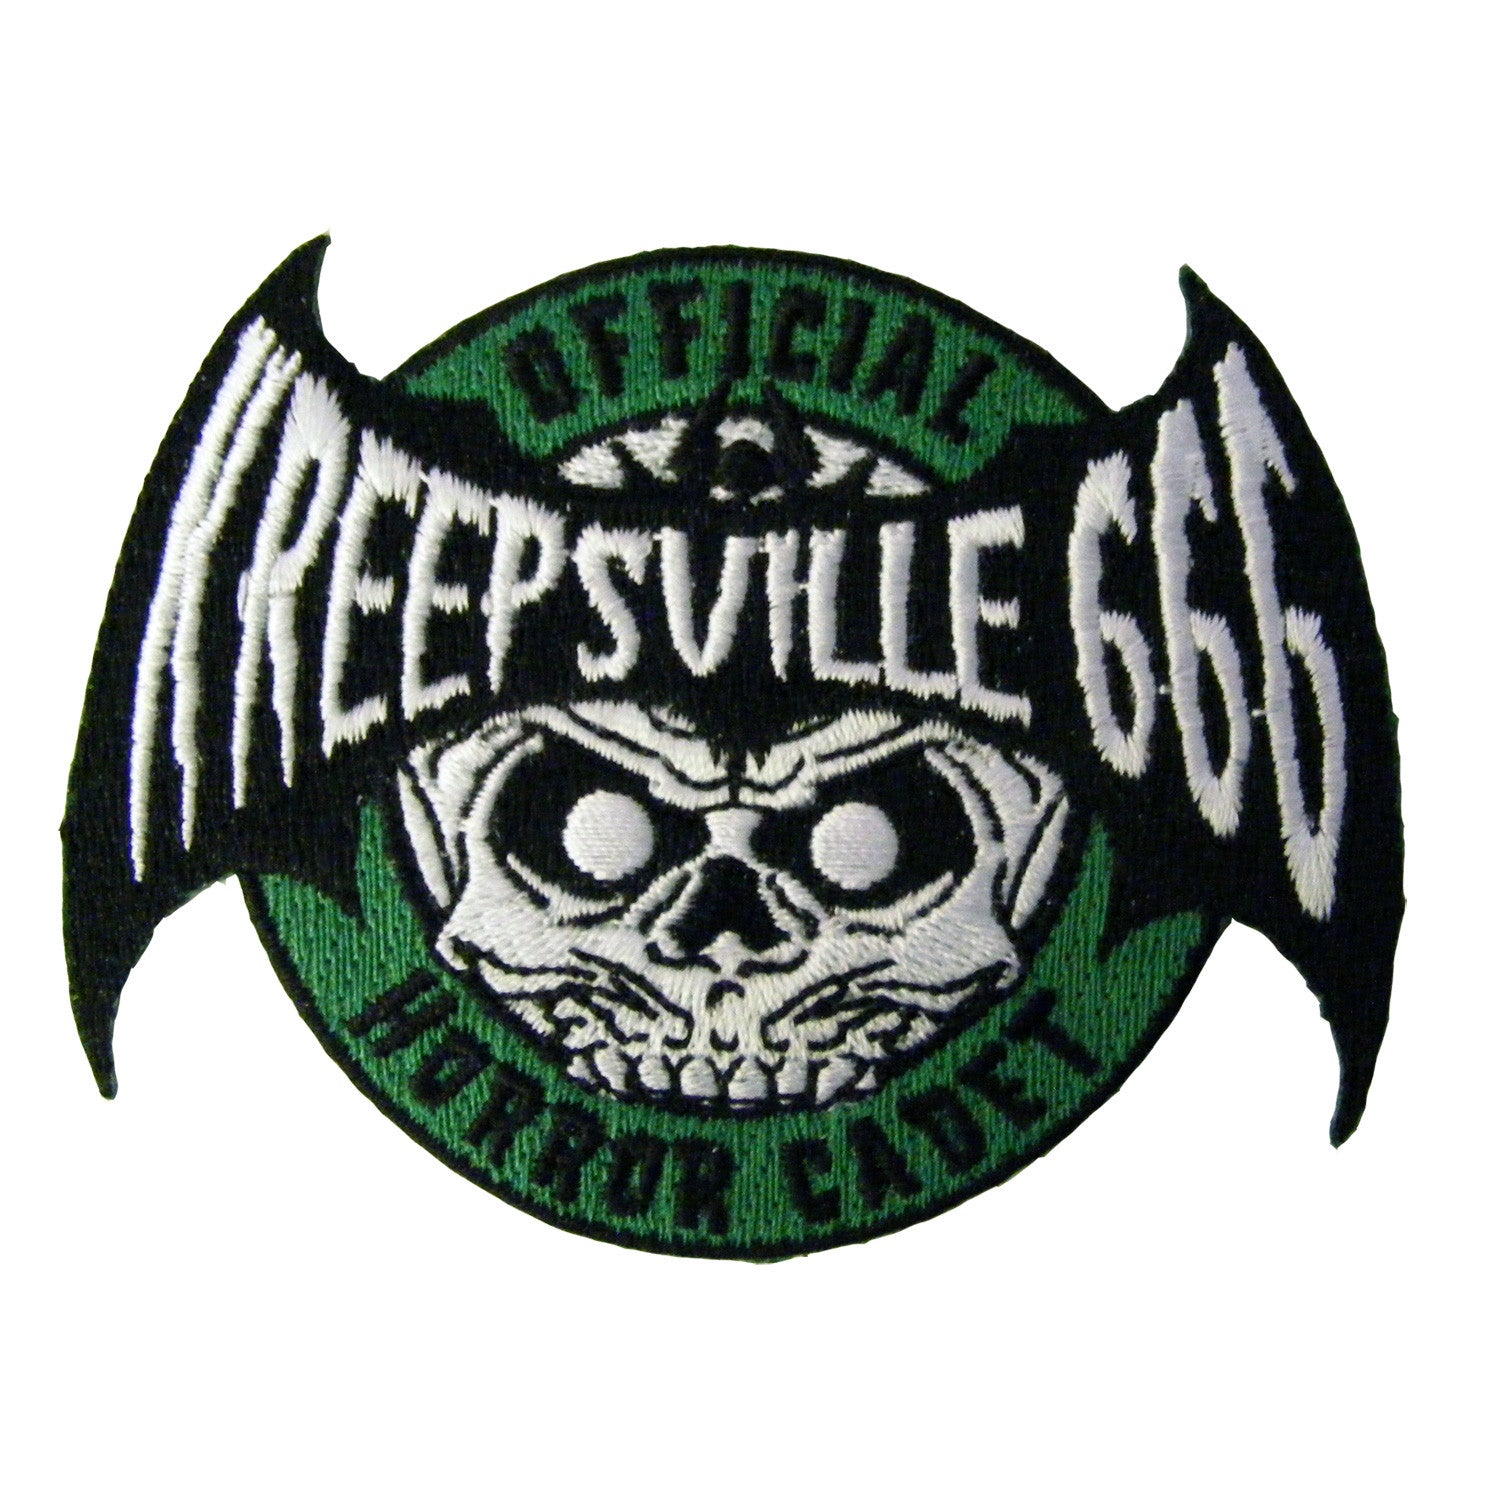 Kreepsville 666 Horror Cadet Patch